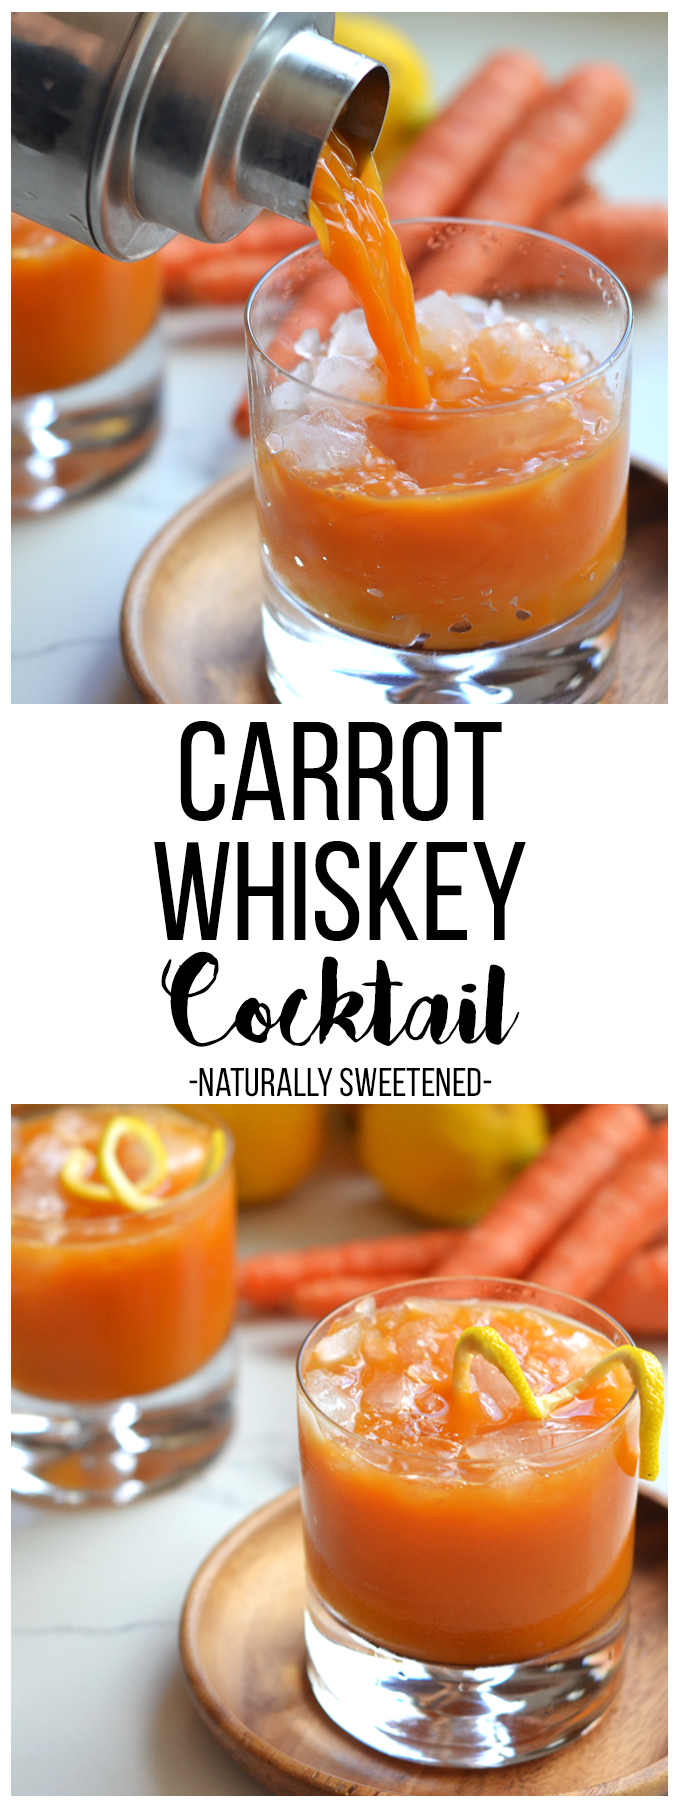 This Carrot Whiskey Cocktail is the perfect way to get your Vitamin A in while enjoying a tipsy drink!